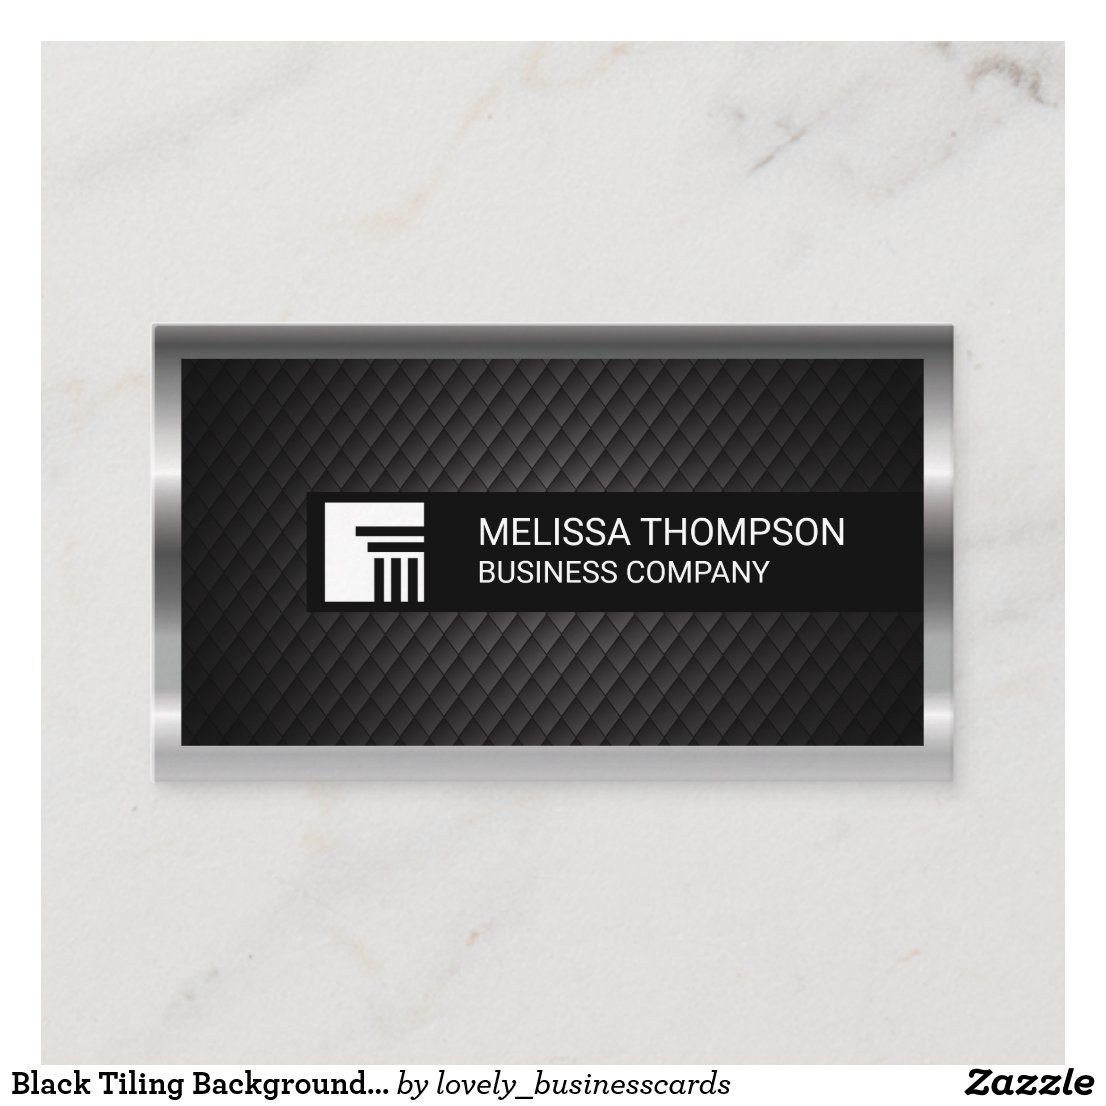 Black Tiling Background Silver Metallic Border Business Card Zazzle Com Professional Business Cards Business Card Design Custom Holiday Card